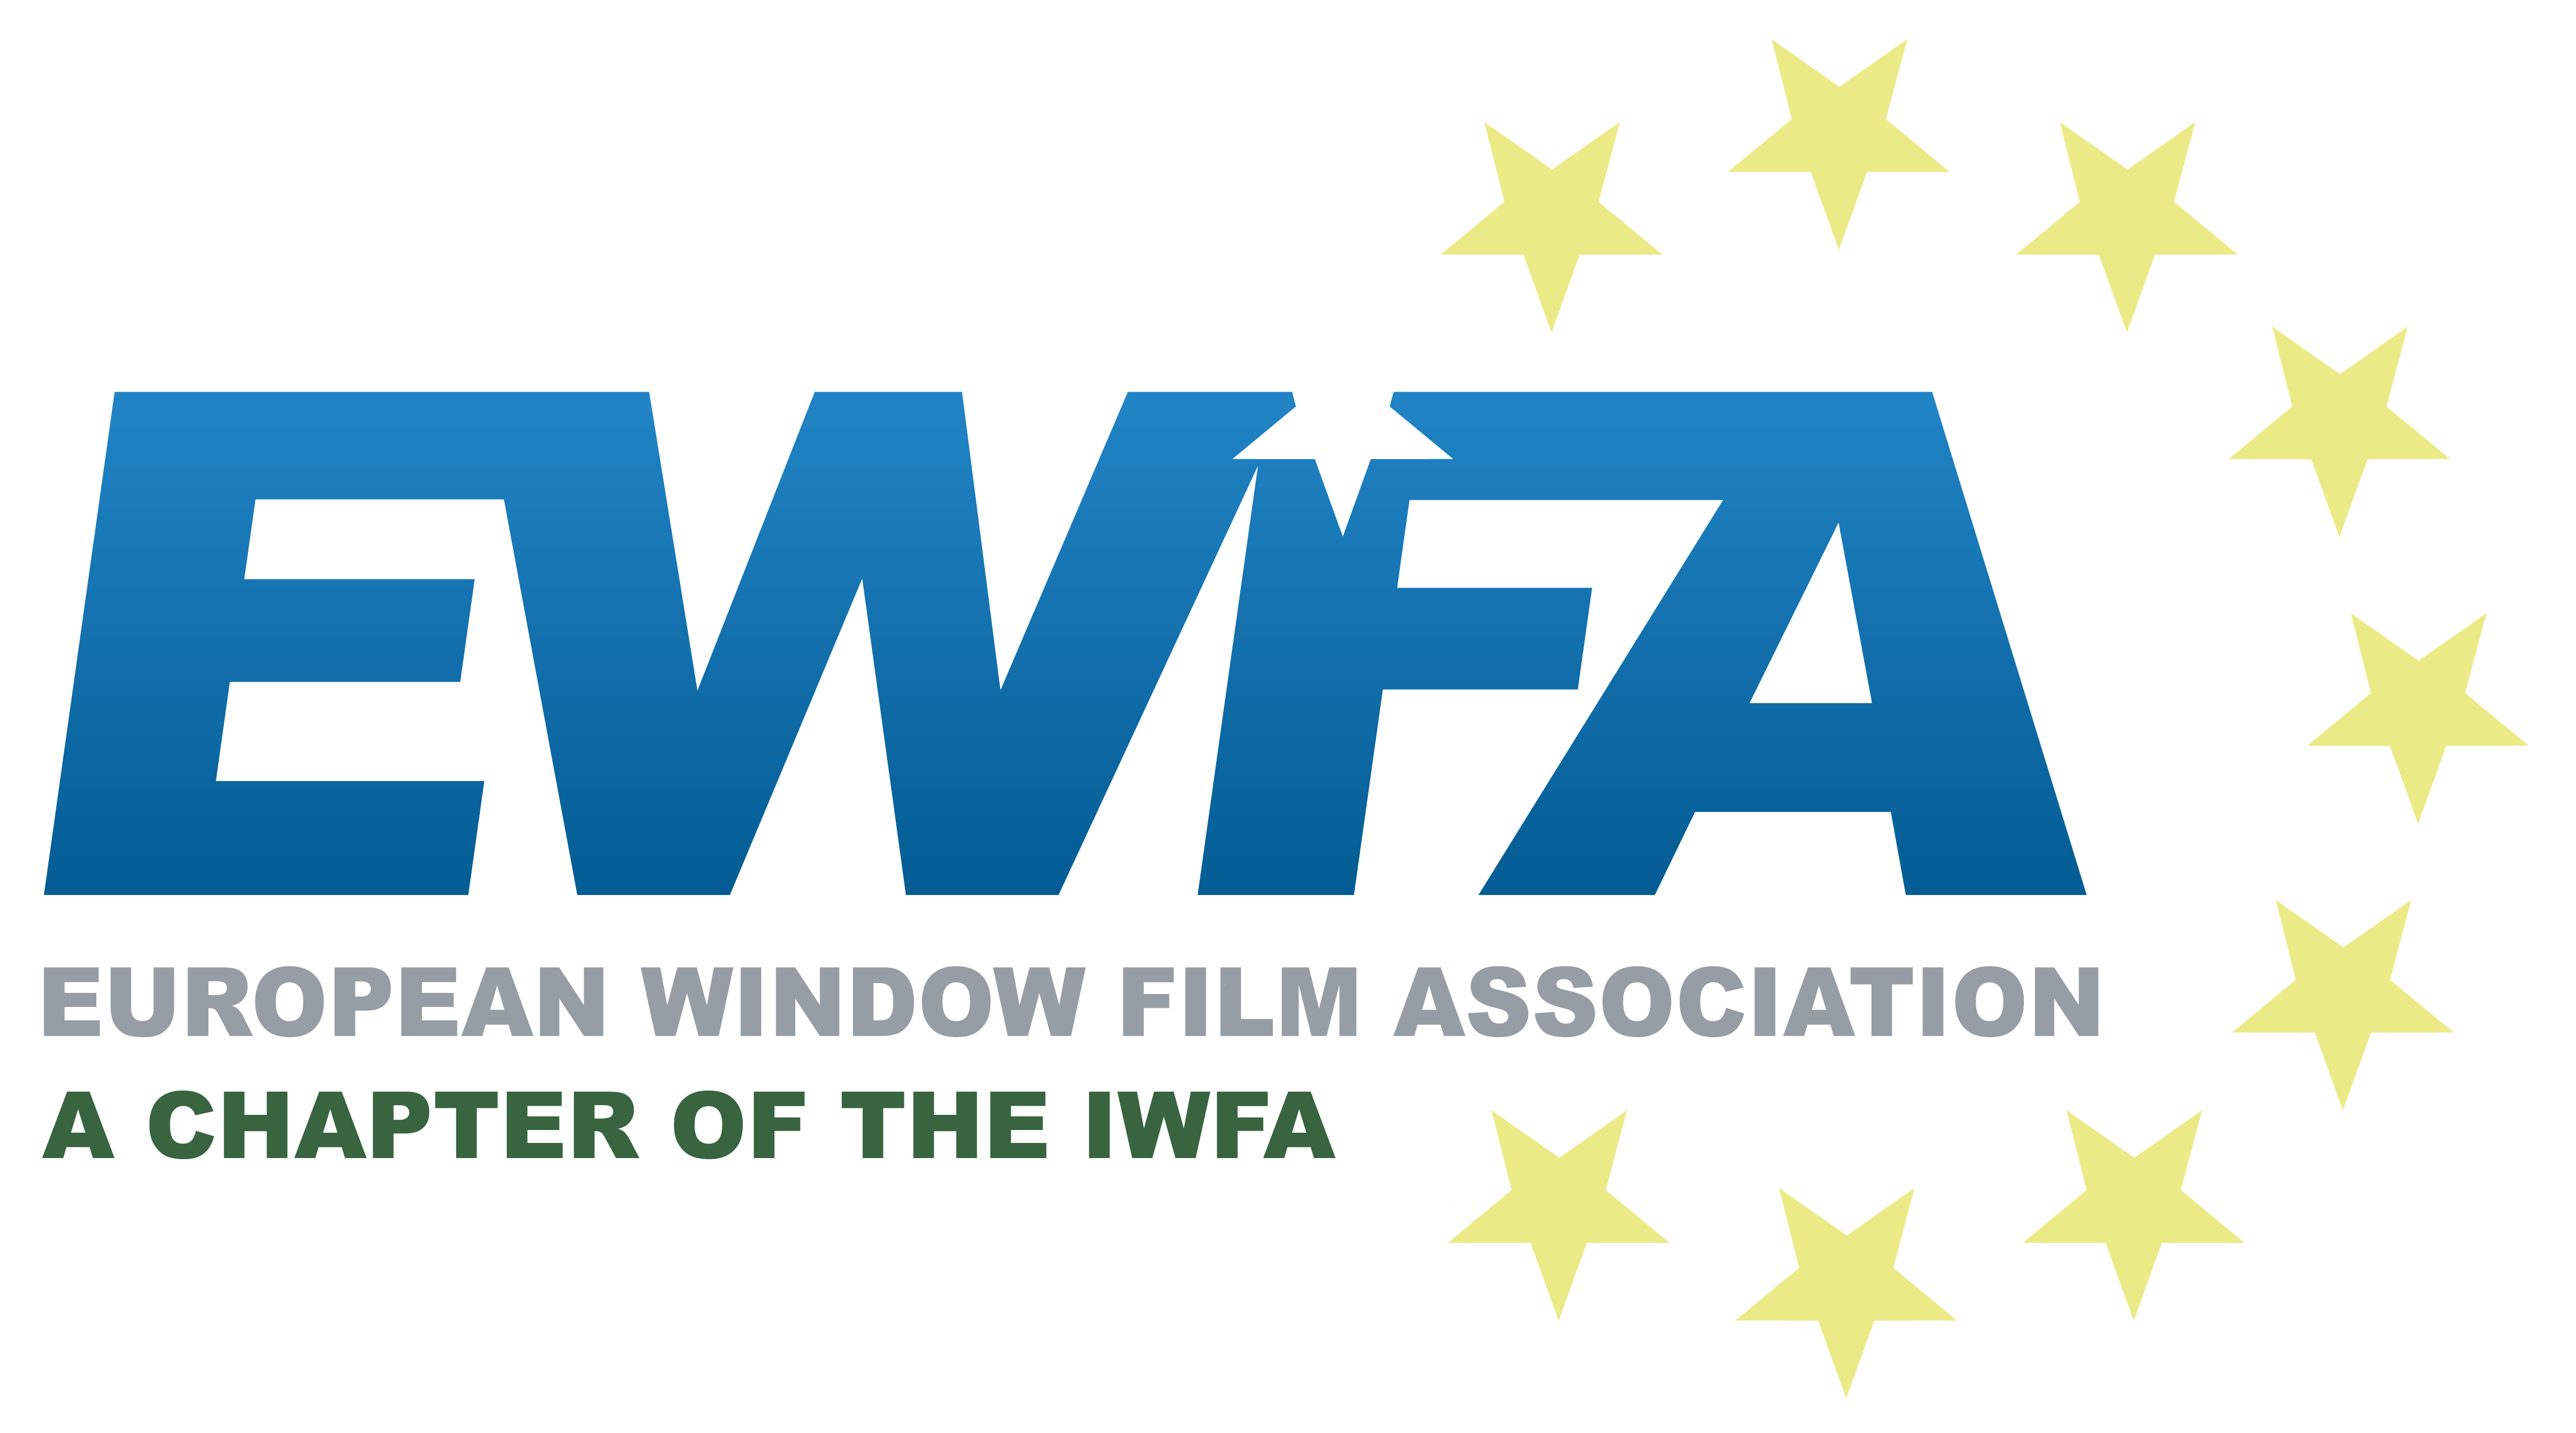 EWFA Annual Membership Meeting